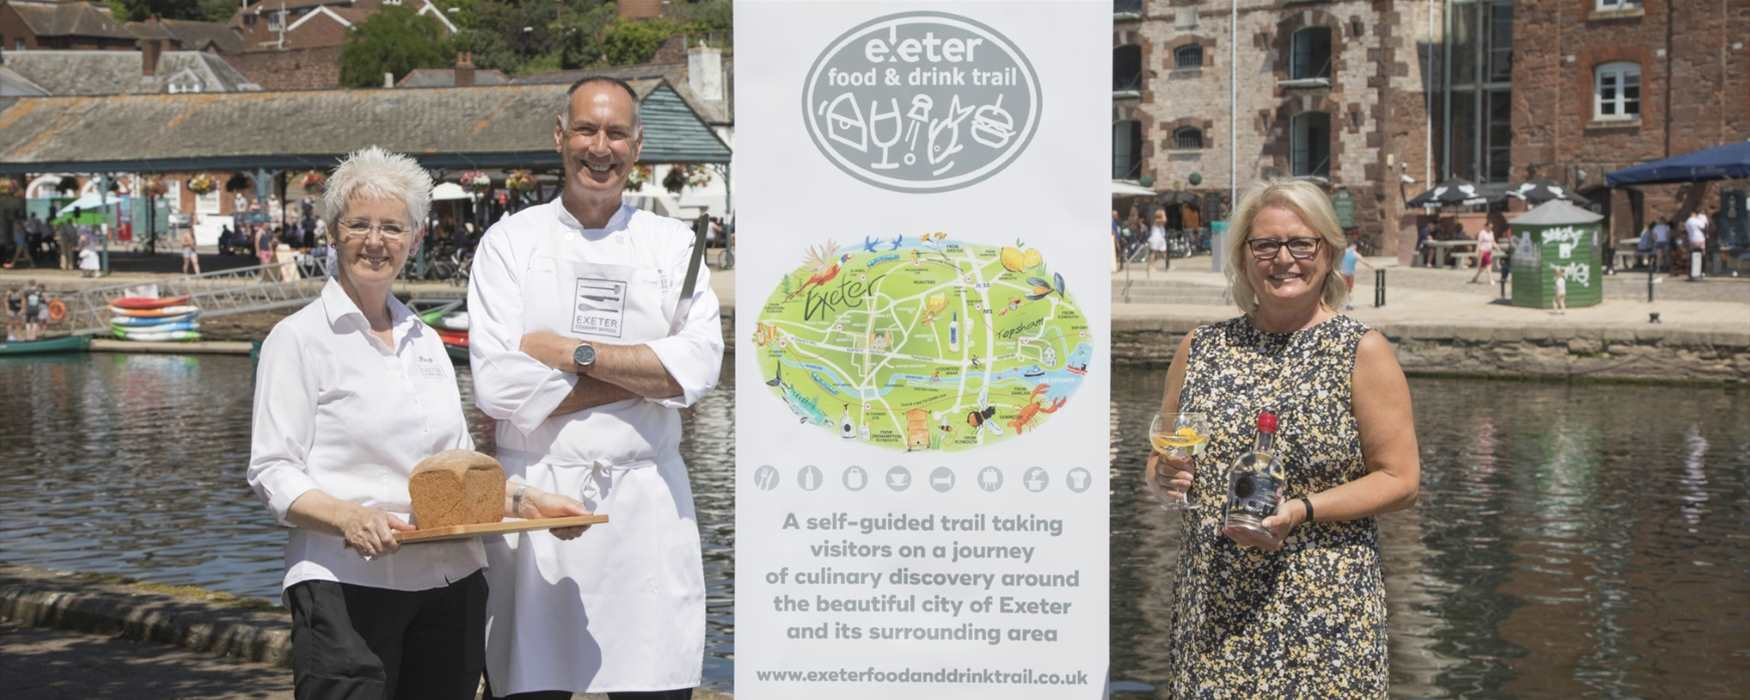 Exeter Food & Drink Trail Ambassadors